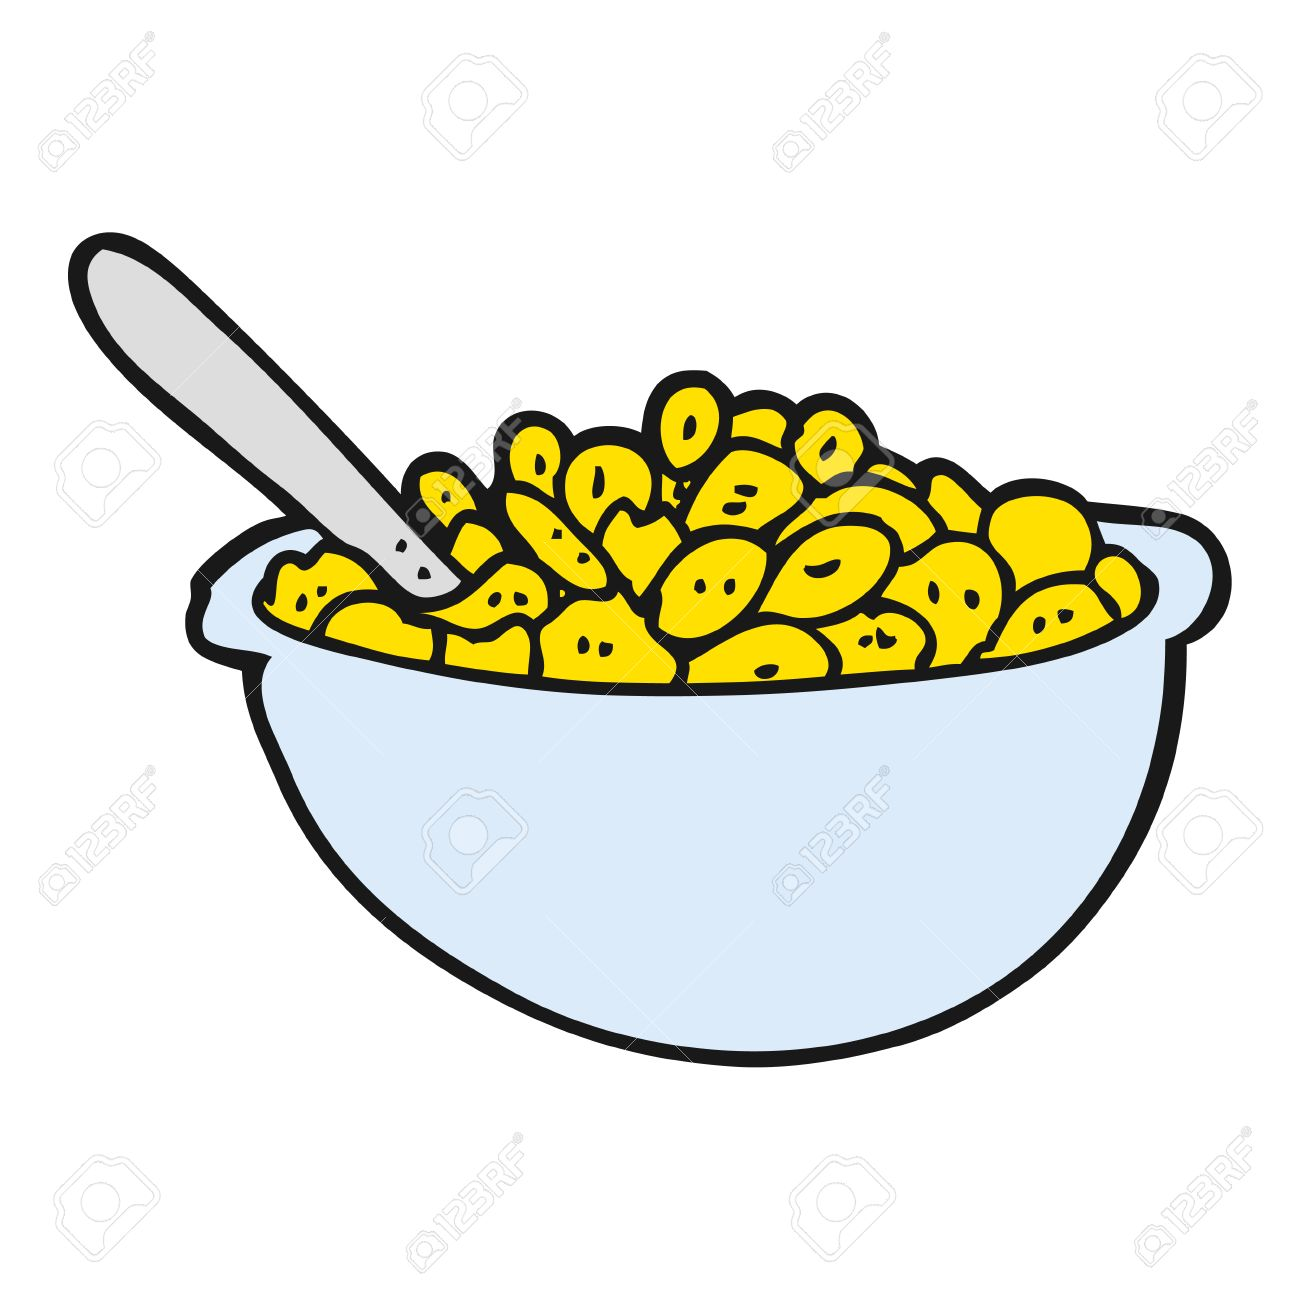 hight resolution of freehand drawn cartoon bowl of cereal stock vector 54066351